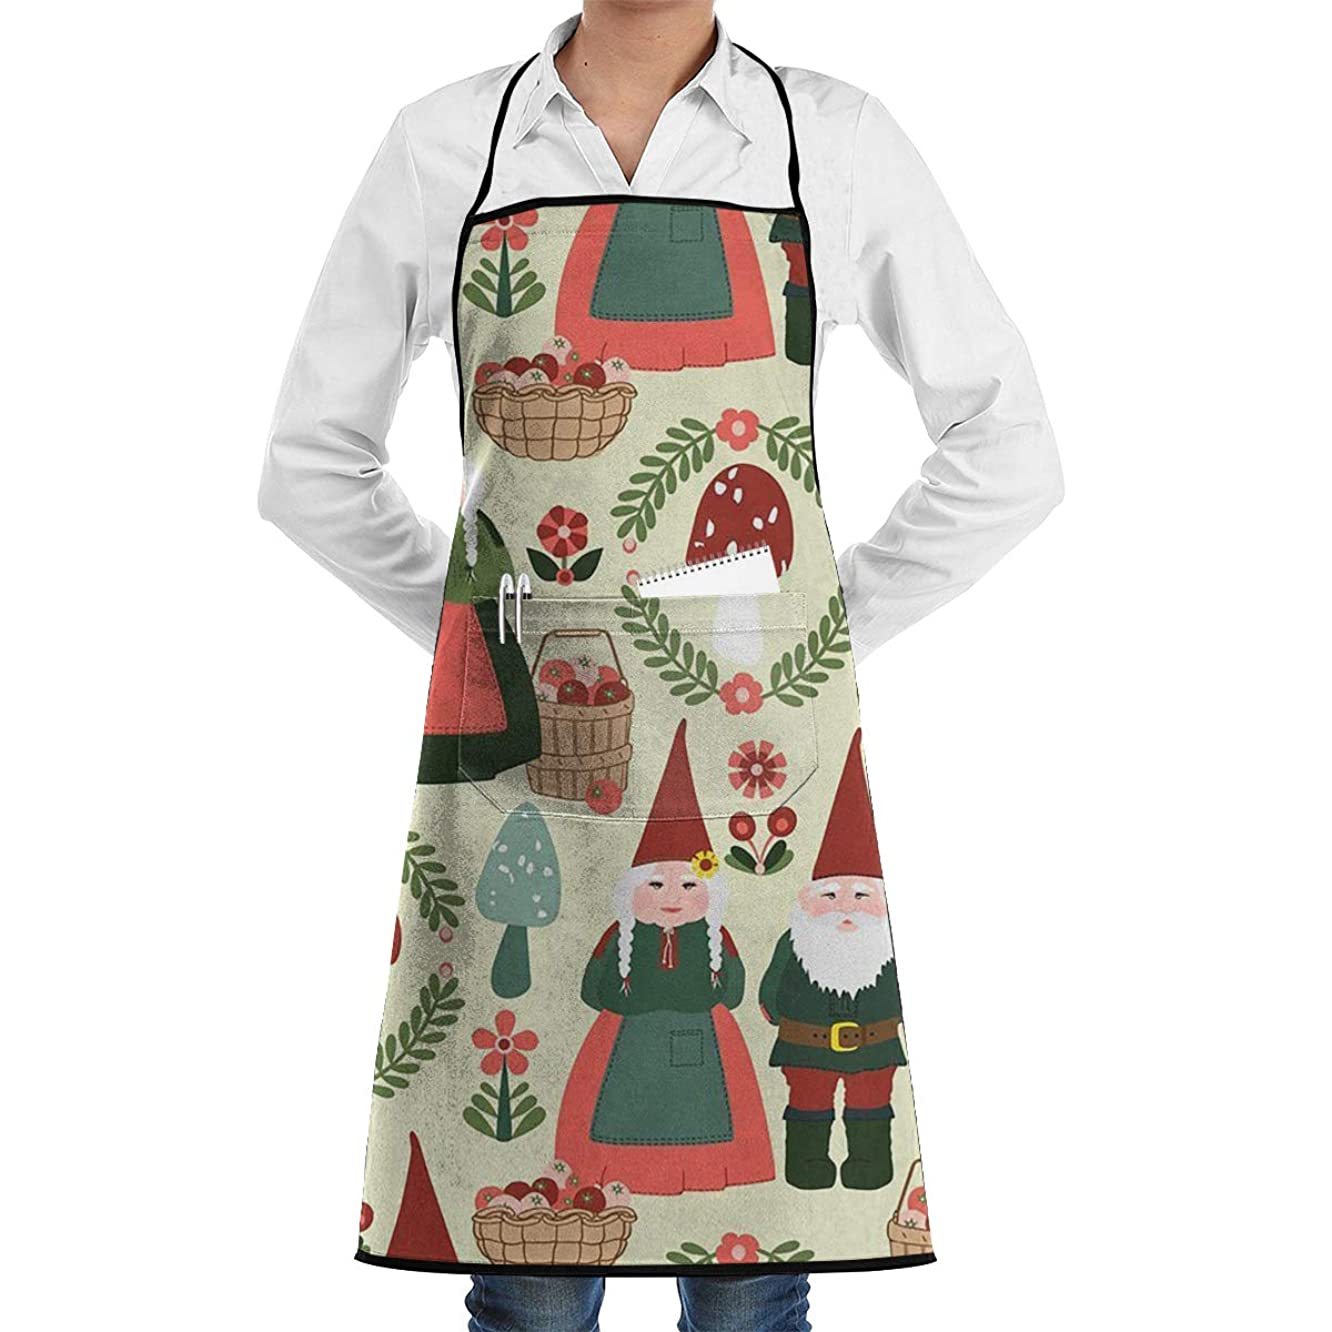 CRSJBB219 Gnomes Xmas Adjustable Kitchen Chef Apron with Pocket & Extra-Long Ties,Men & Women Bib Apron Cute Apron for Cooking,Baking,Crafting,Gardening,BBQ